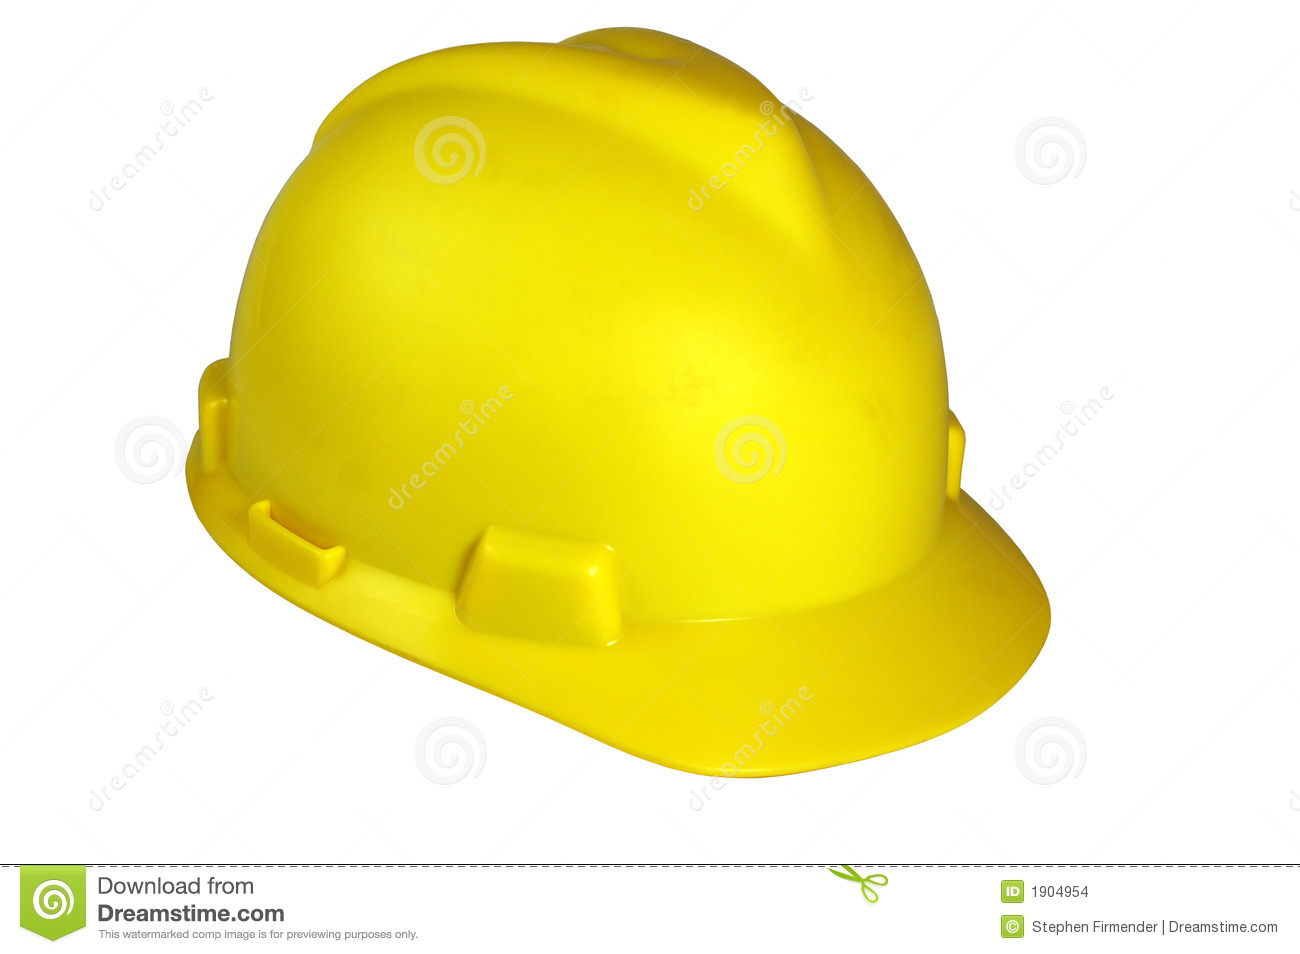 construction worker hat clipart - photo #31